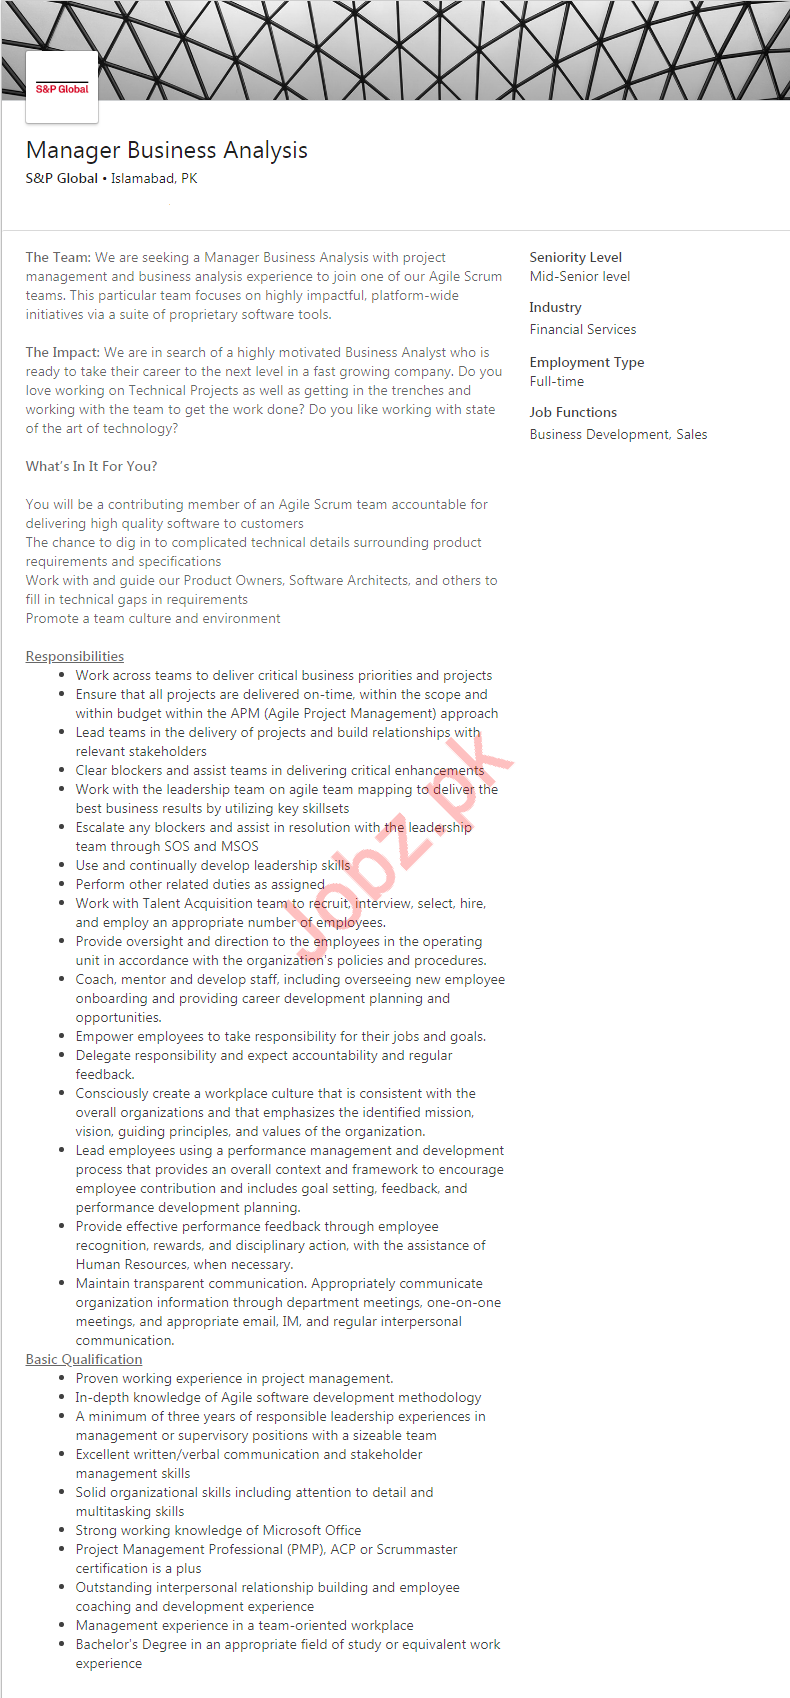 Manager Business Analysis Job in Islamabad